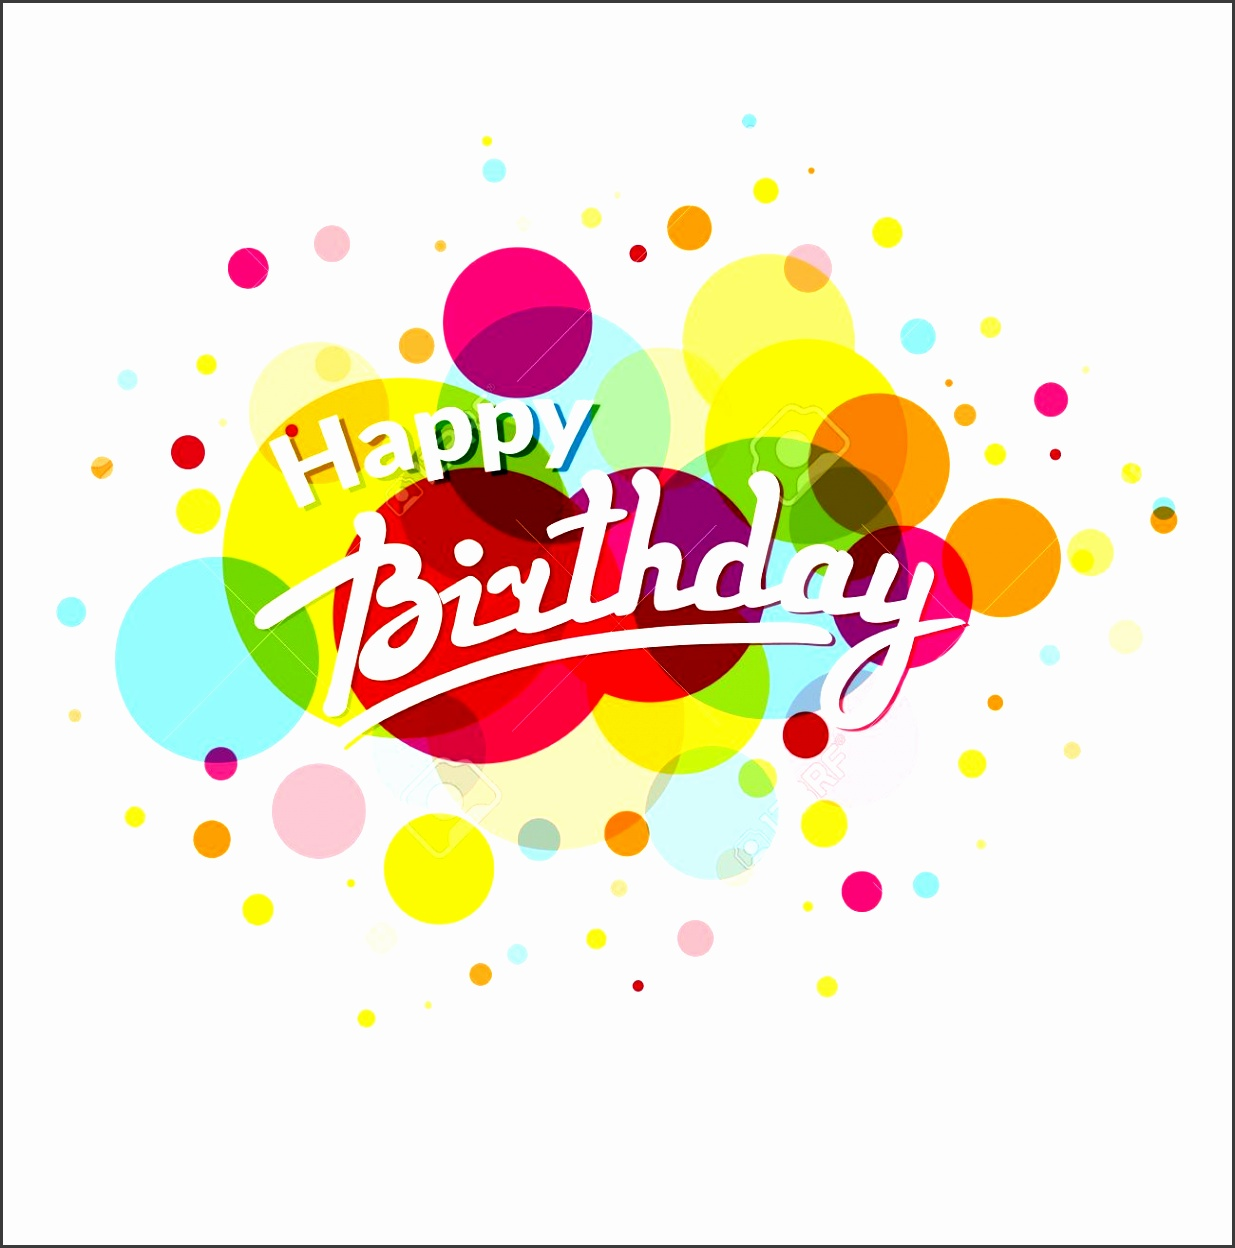 happy birthday greeting card template on background with colorful circles stock vector